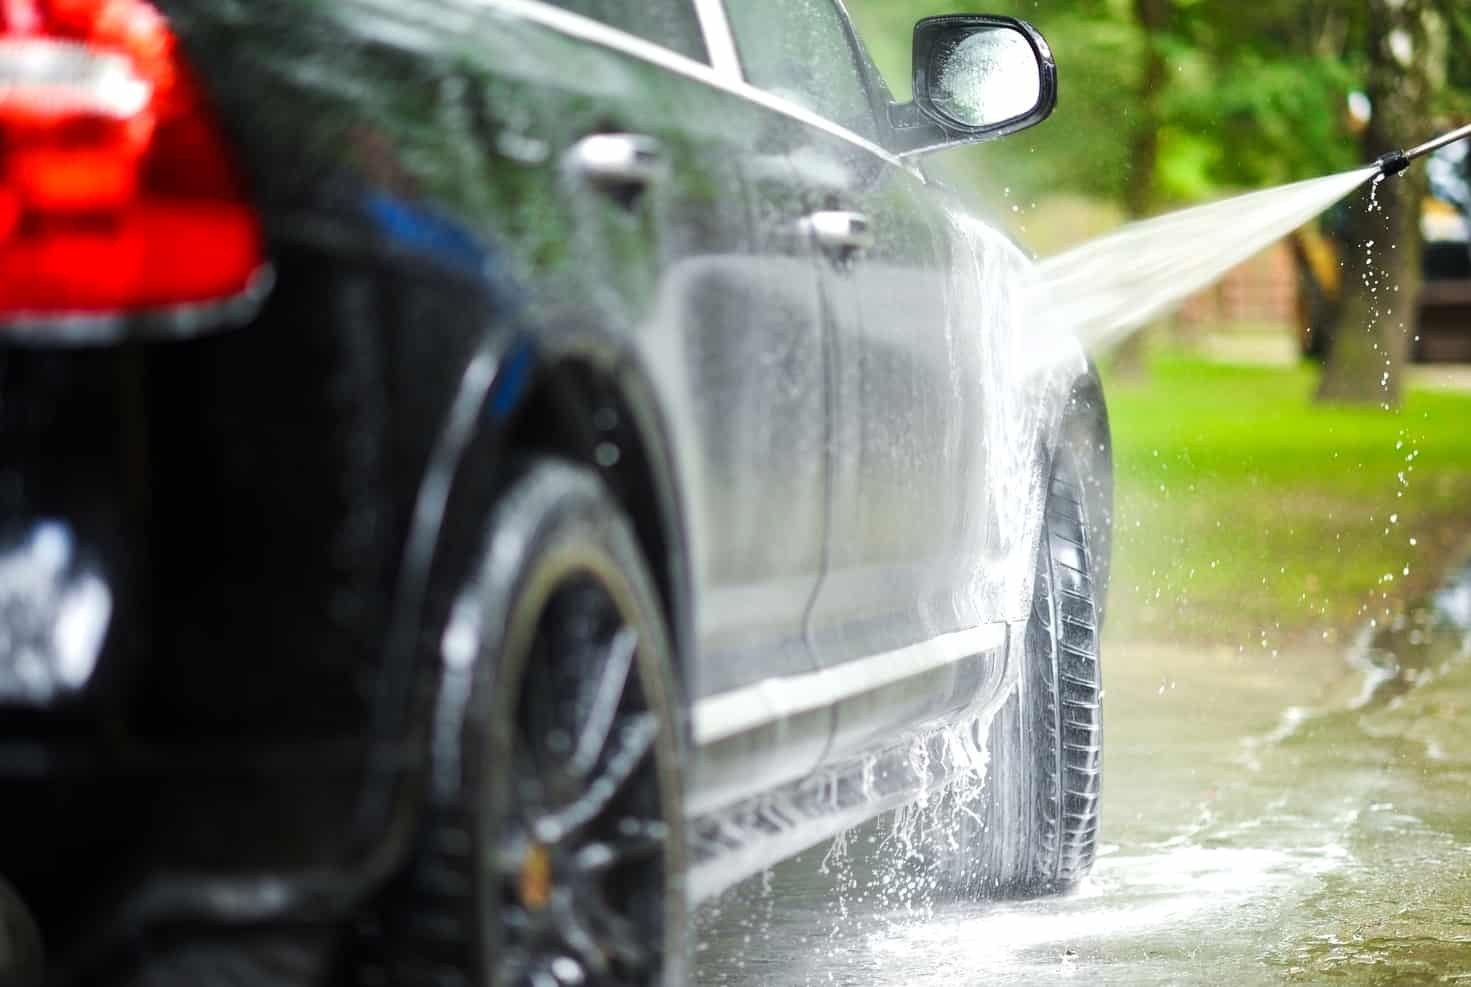 How to Wash a Car Without Scratching the Paint